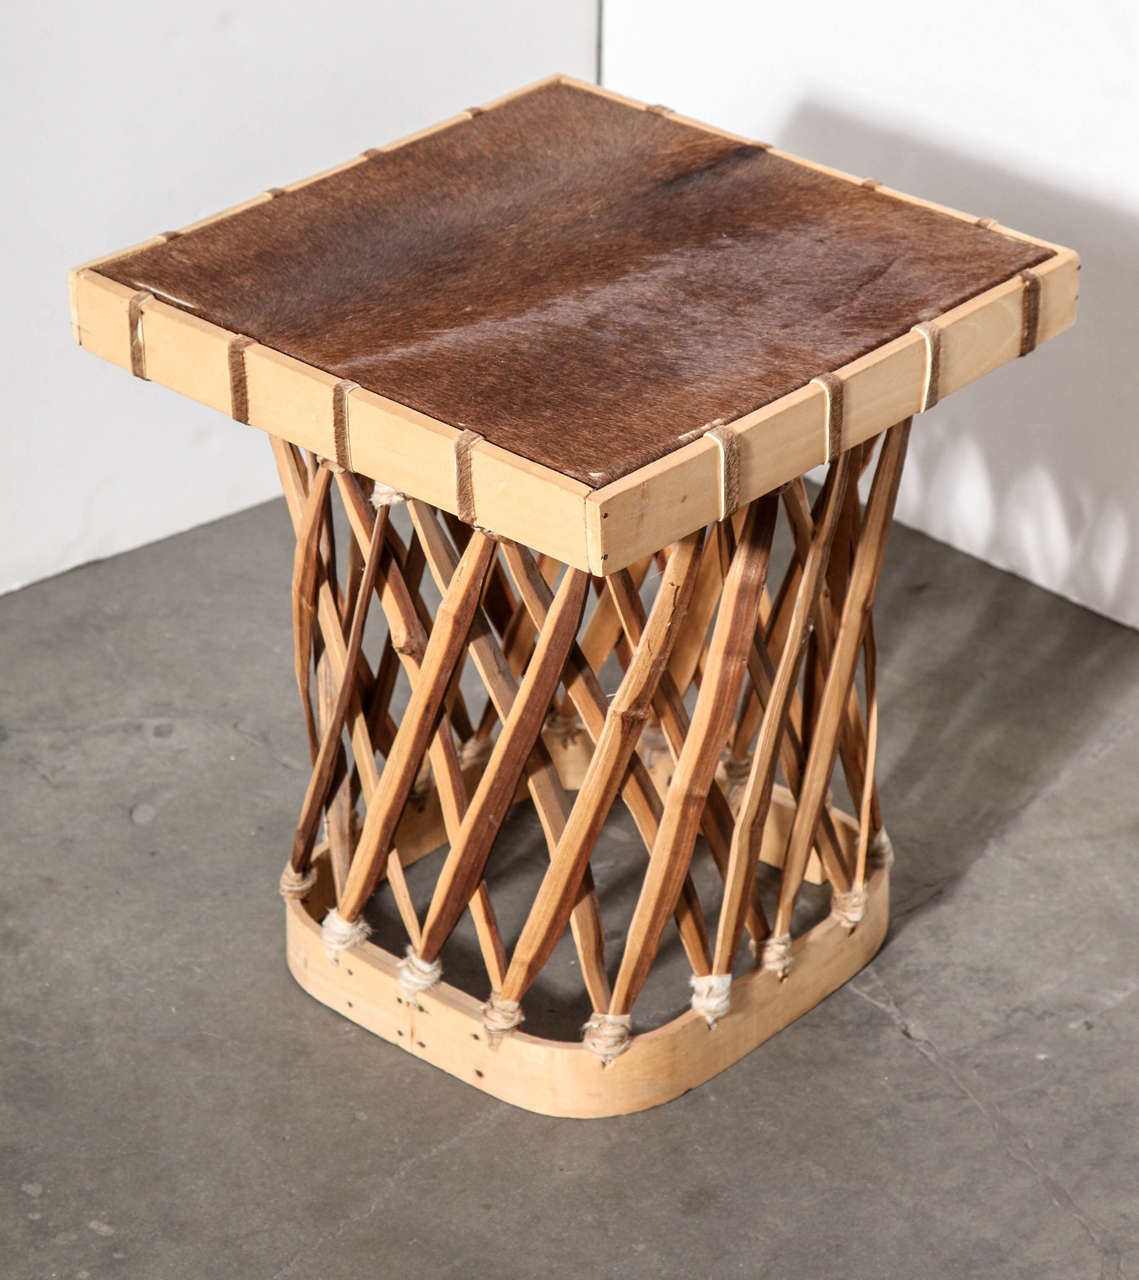 This small wooden table with cowhide top was handcrafted in Mexico. Top is braced underneath with wood. Wood strips along base are secured with leather.